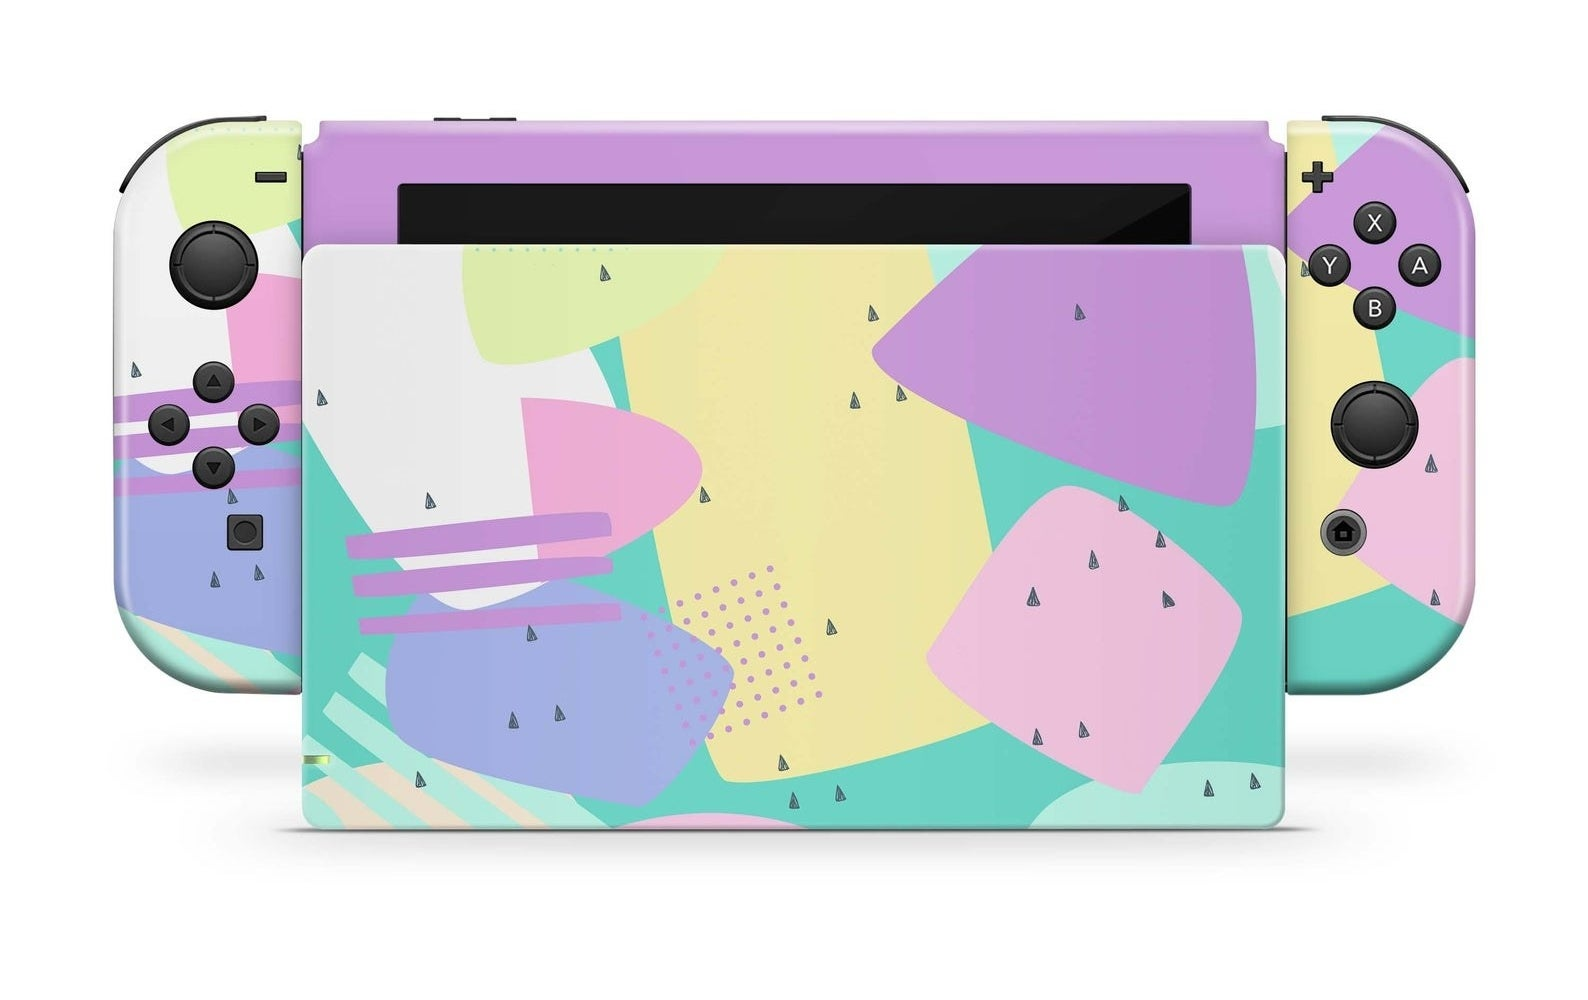 A Nintendo Switch with a skin that is pastel '90s inspired shapes